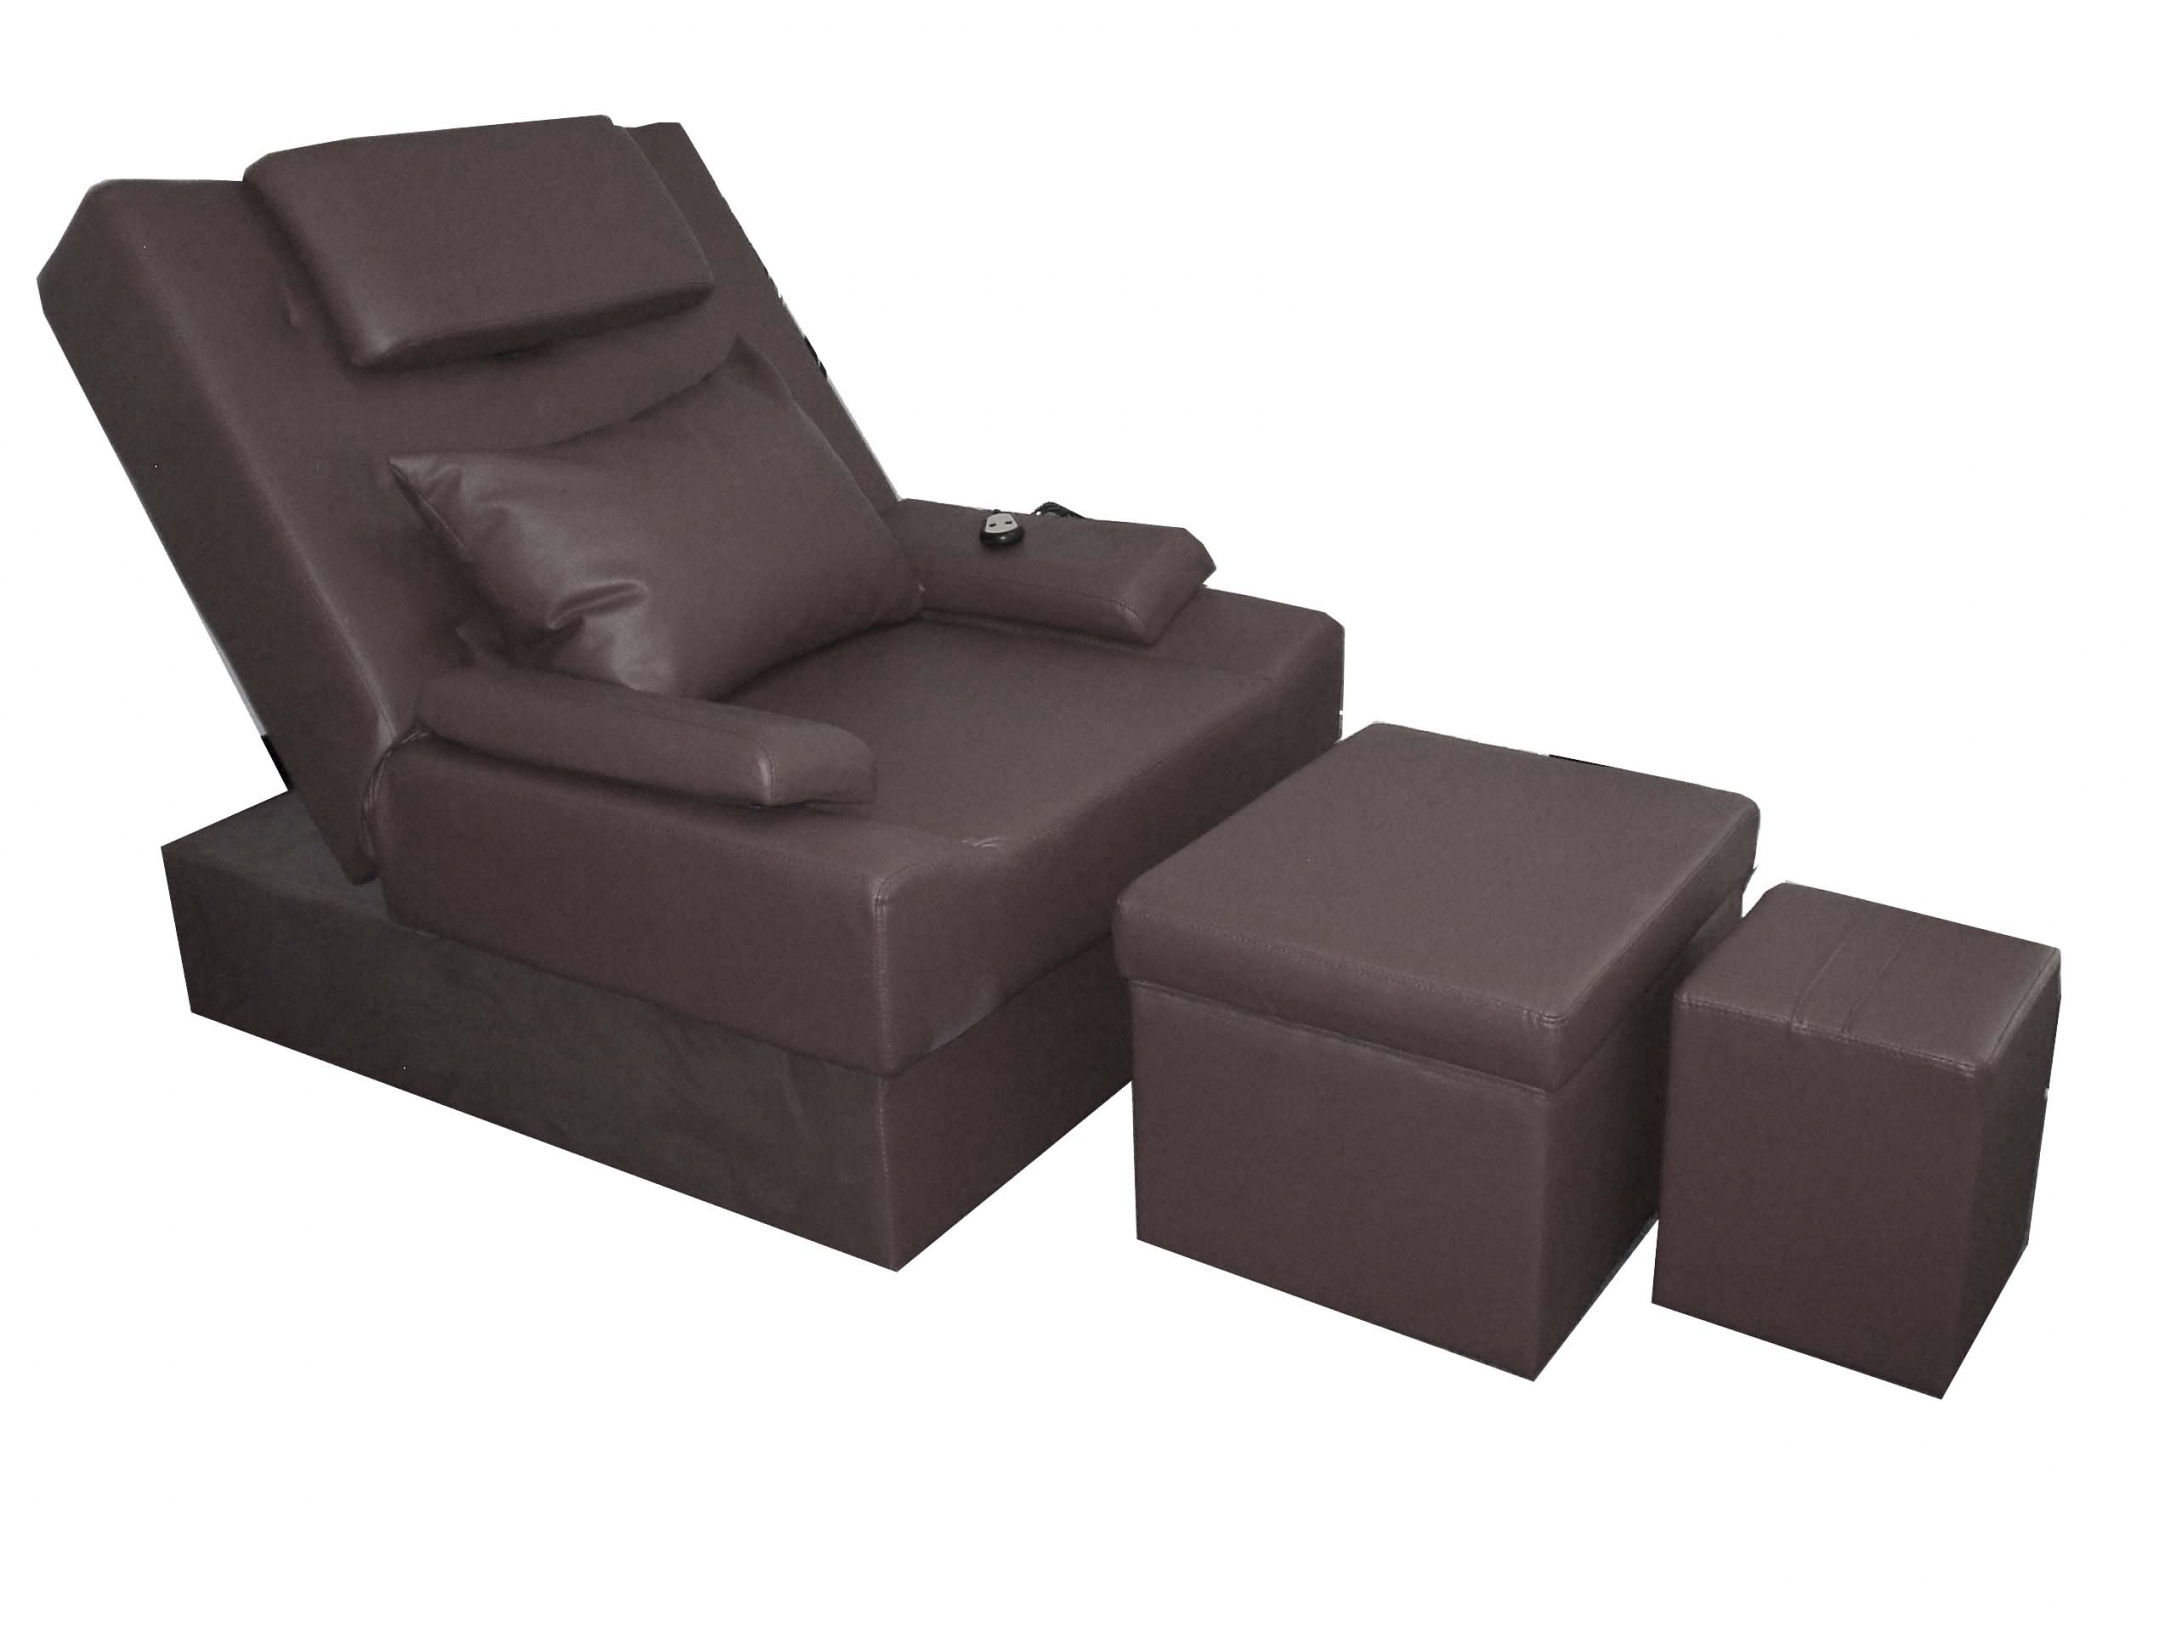 Foot Massage Sofas Throughout Preferred Foot Massage Chairs (View 12 of 20)